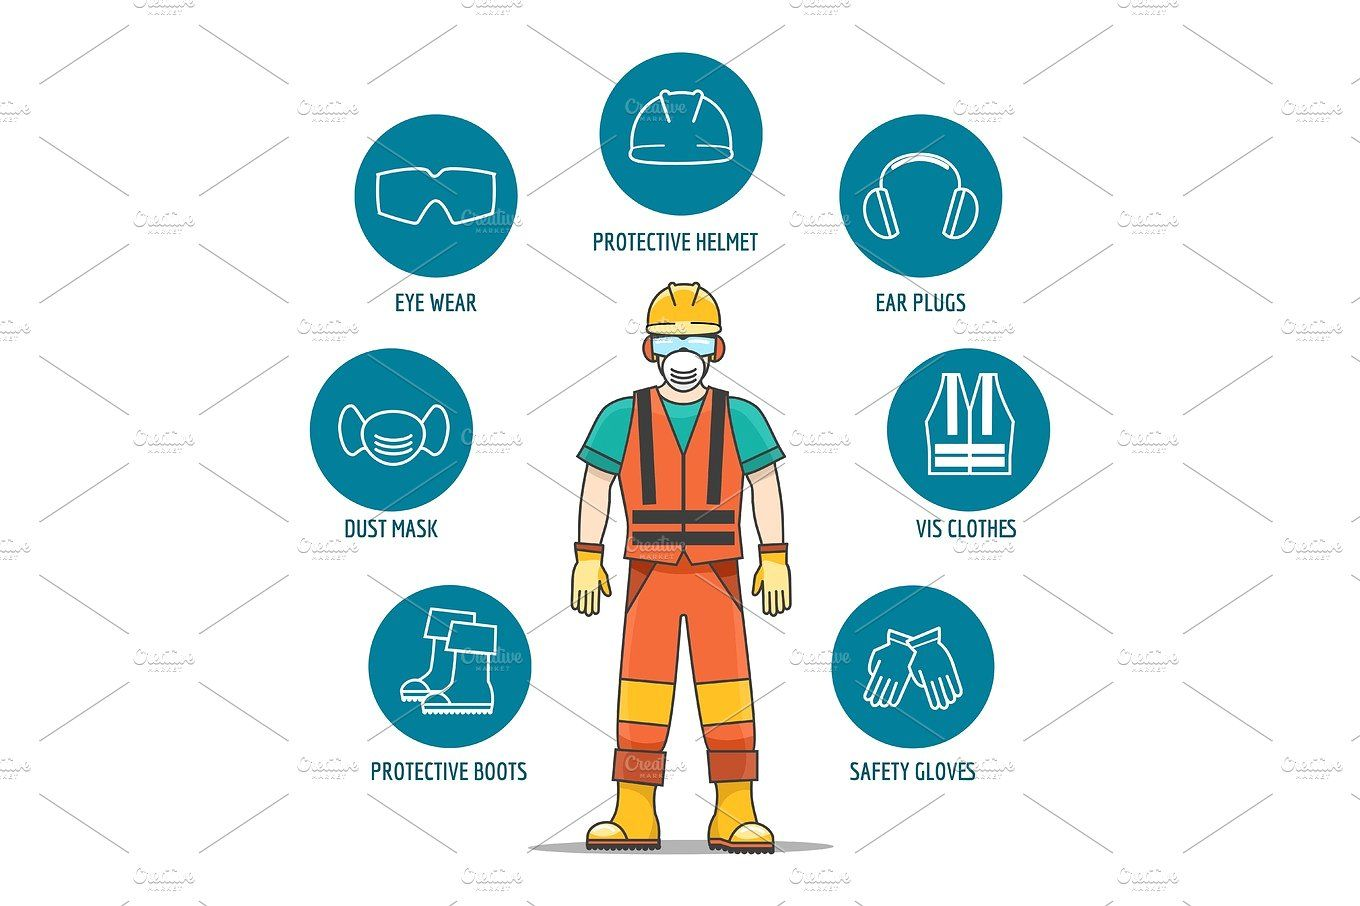 Protective and Safety Equipment Safety equipment, Safety